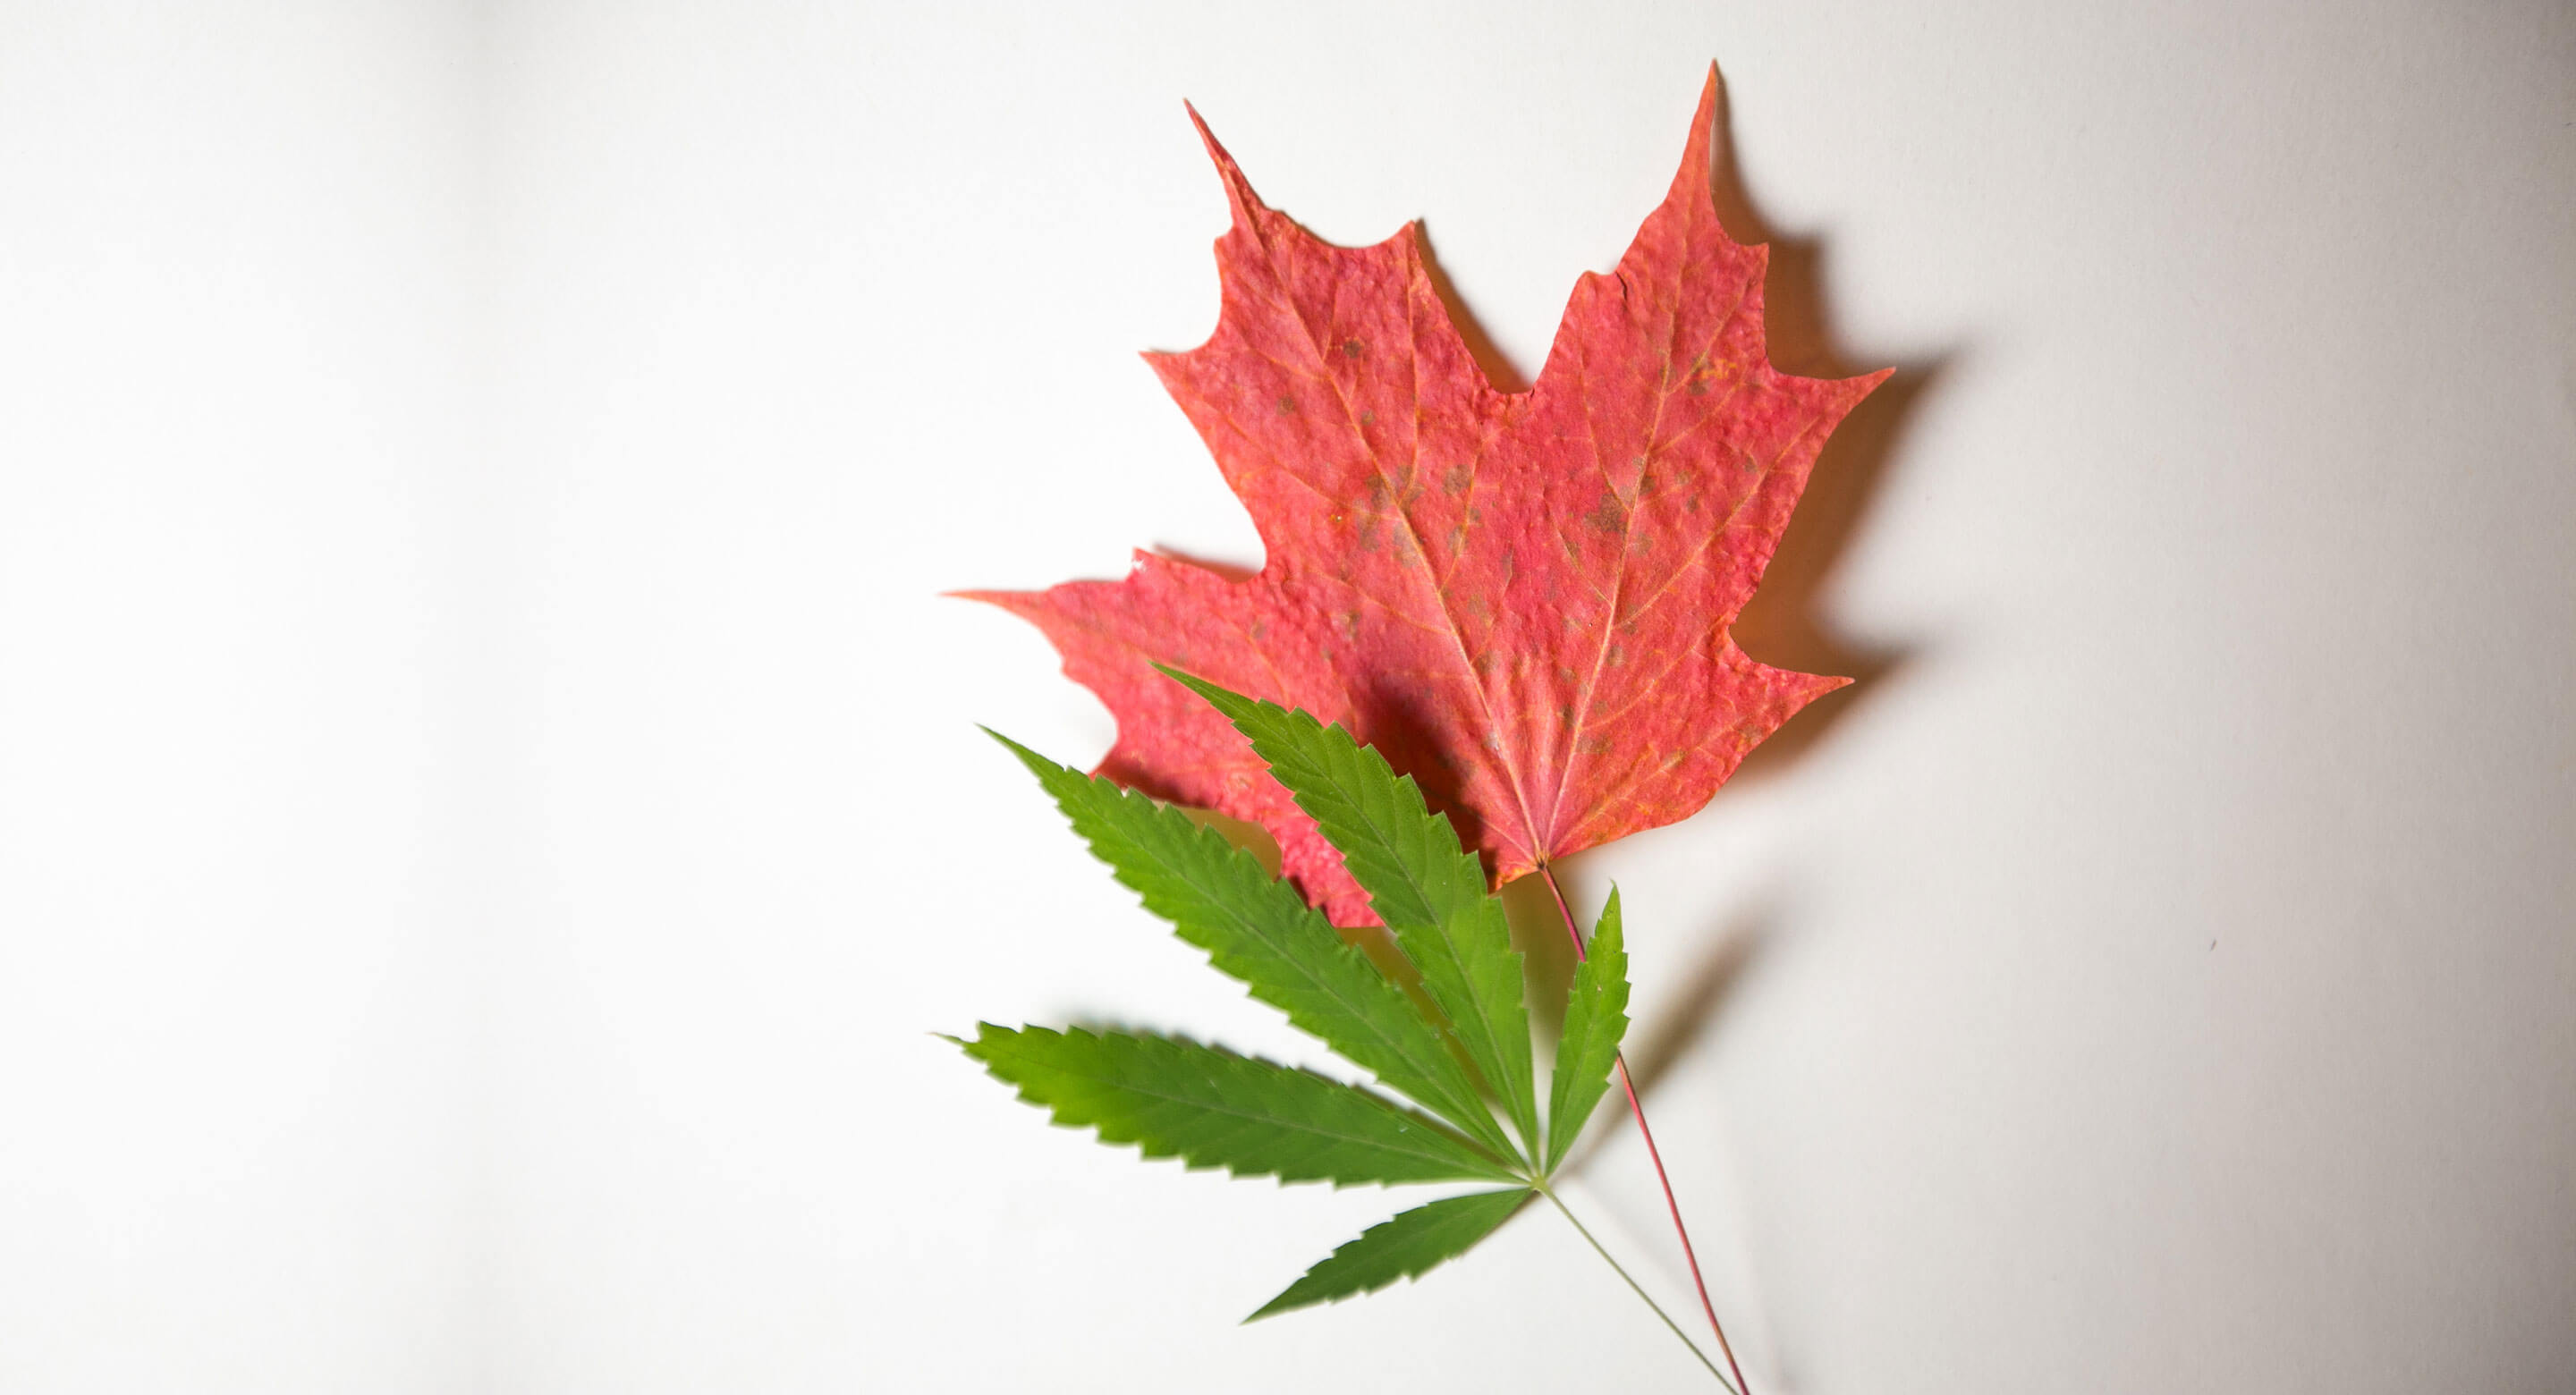 Photo of a cannabis leaf and a maple leaf